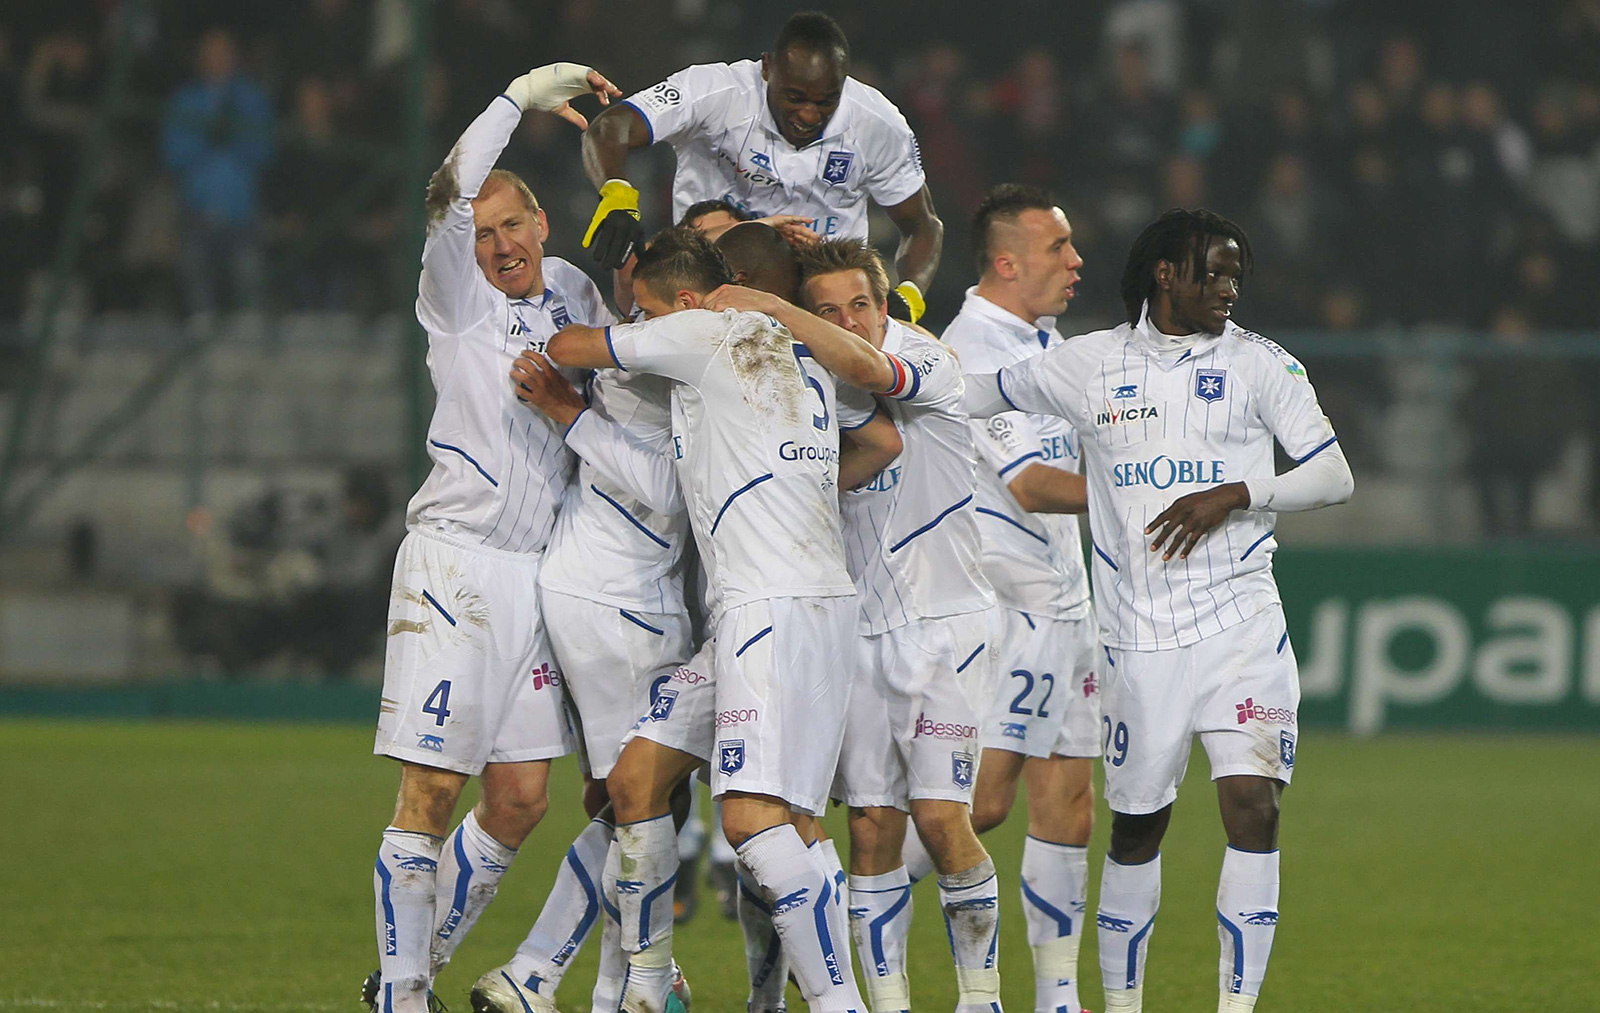 Match Arles Avignon - AJ Auxerre en direct live streaming